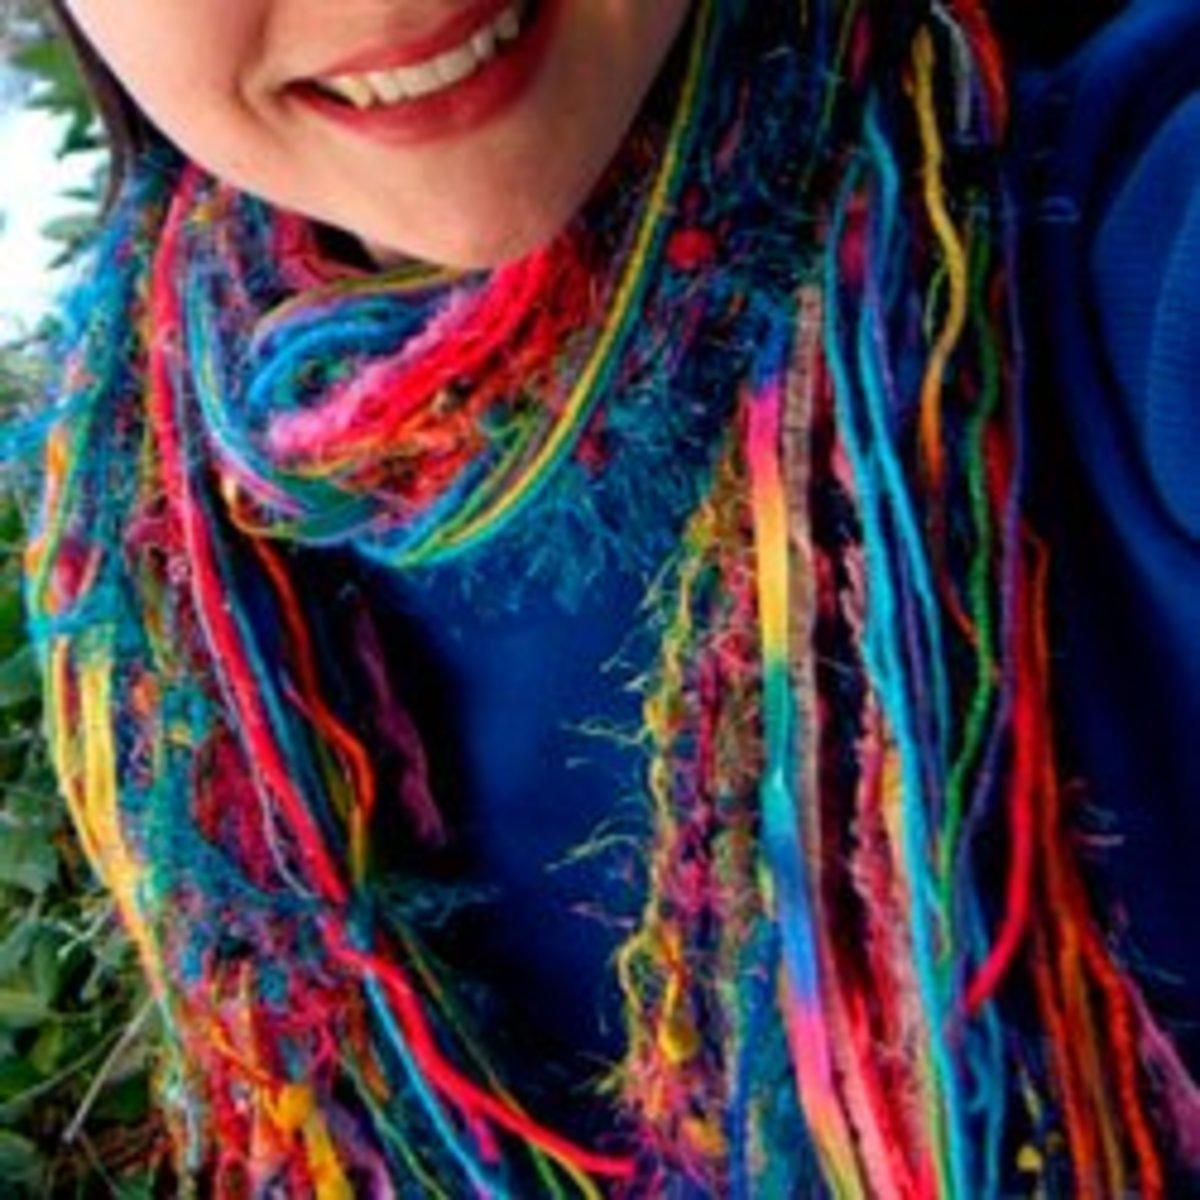 Very simple project - cut lengths of sari yarn with other ribbons and yarns to create a simple yarn scarf with no sewing required.